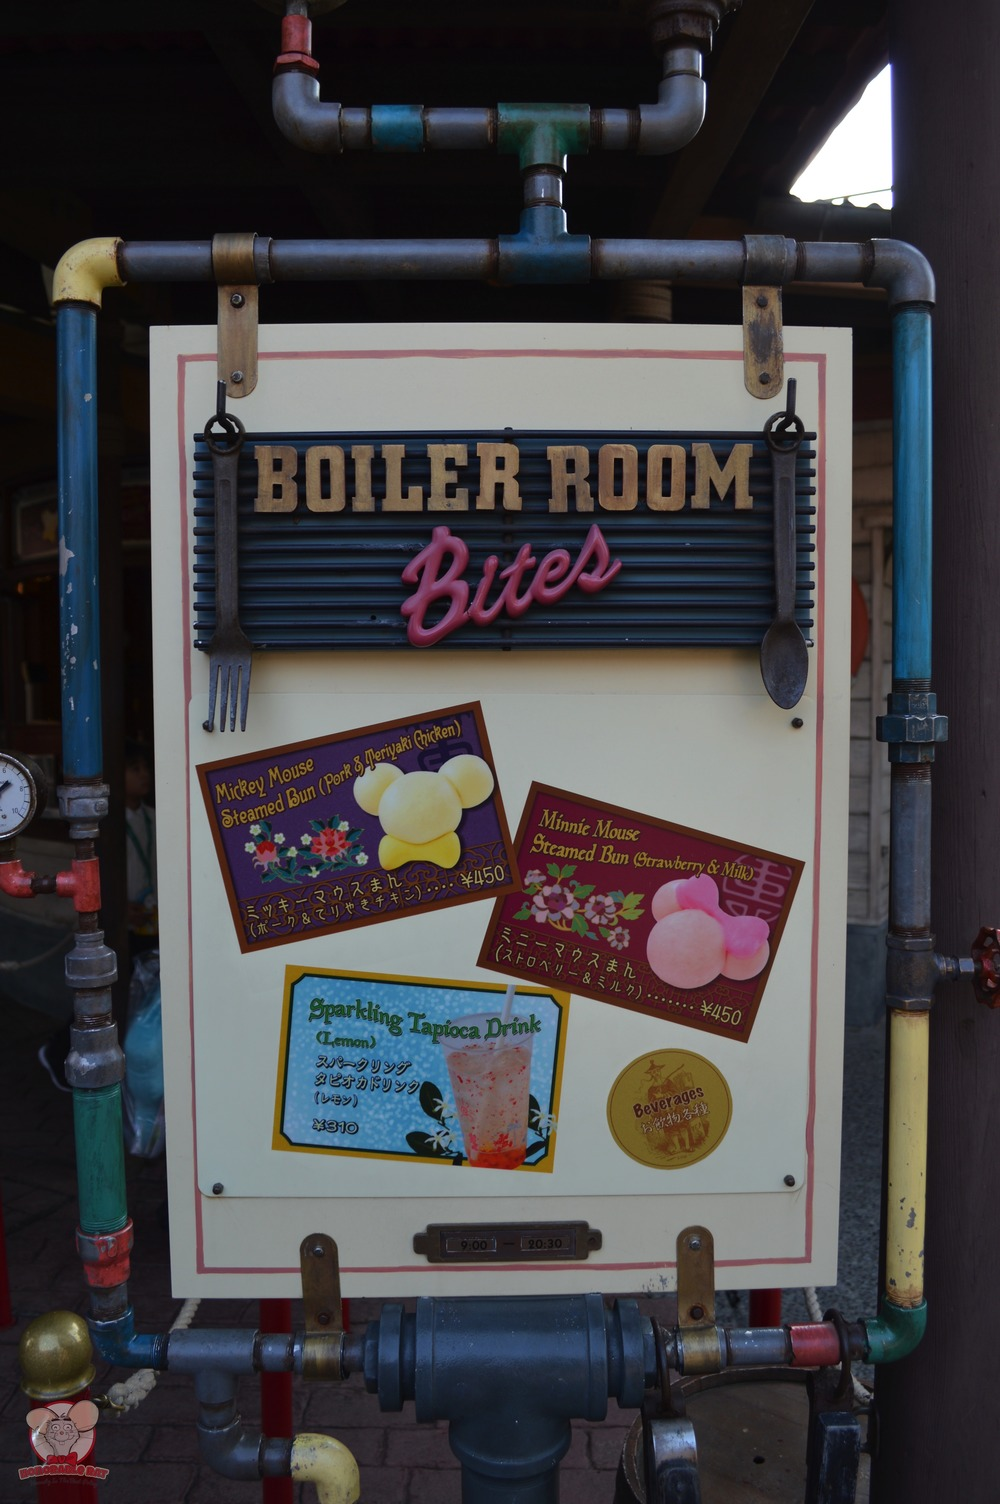 Boiler Room Bites Menu